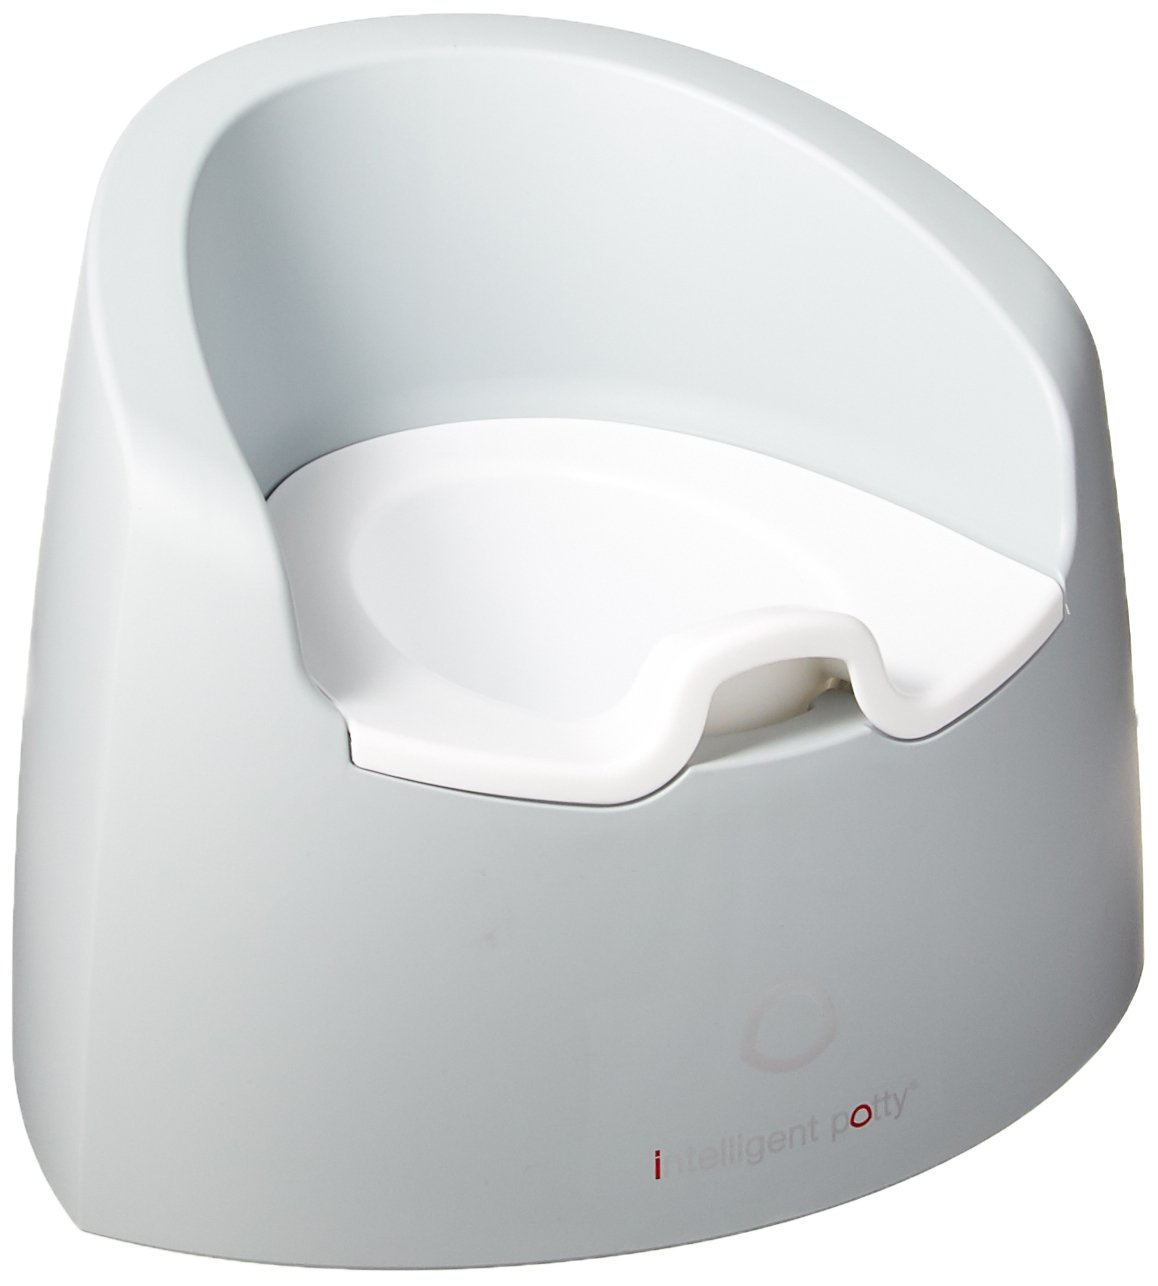 Intelligent Potty with Voice Recording for Potty Training Babies, Grey 198003